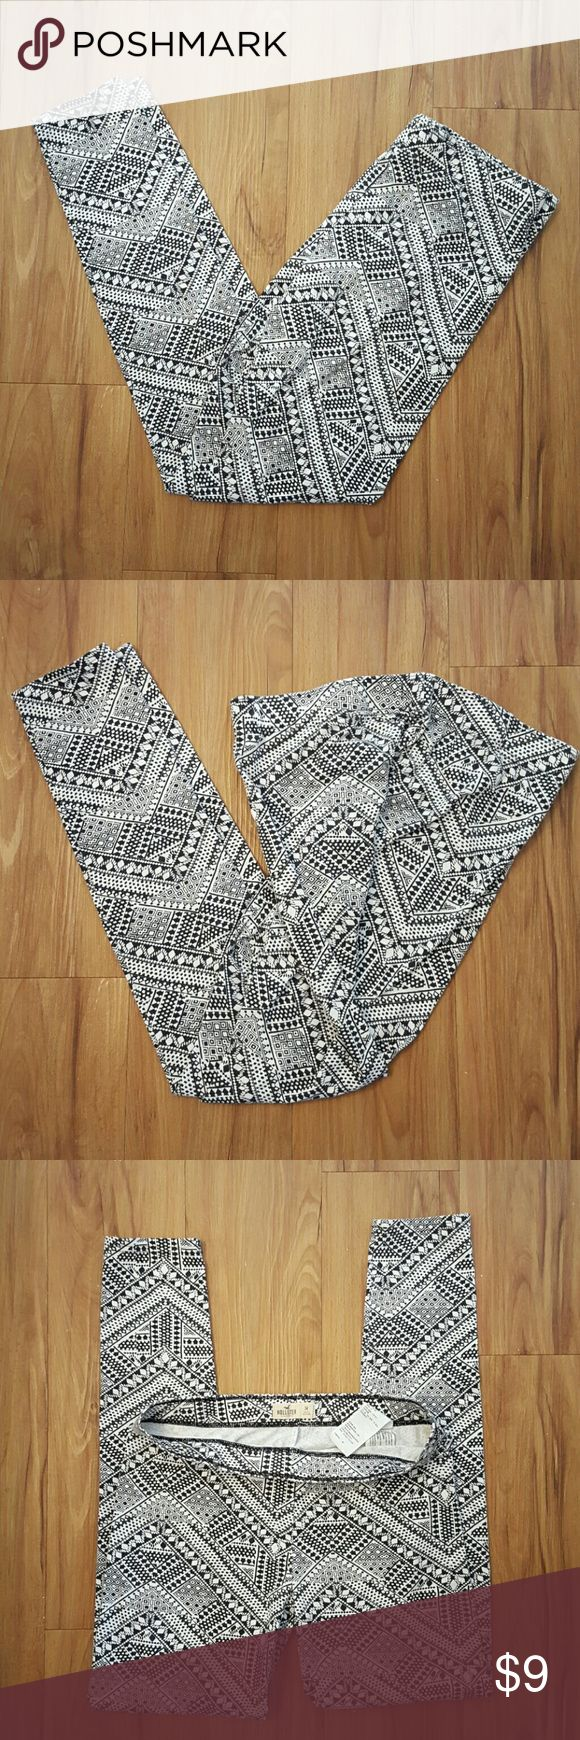 Black and white Hollister leggings new Hollister leggings black and white geometric pattern new, tag was ripped off  never worn. Hollister  Pants Leggings